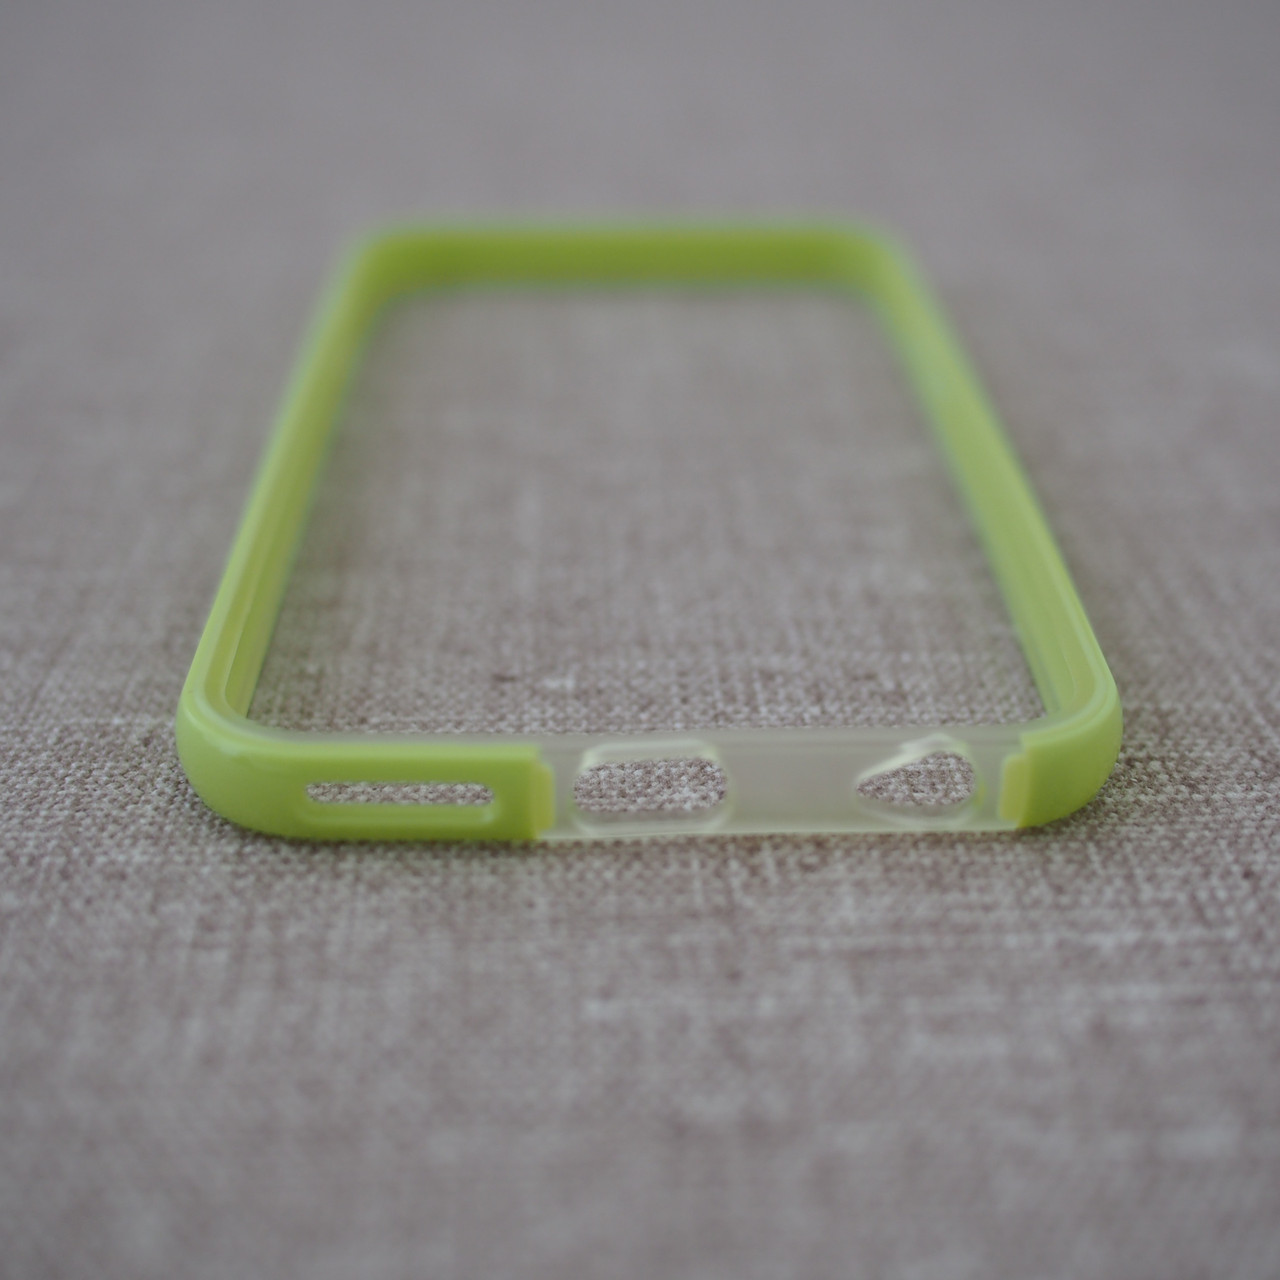 ROCK Duplex Slim Guard iPhone 6 green